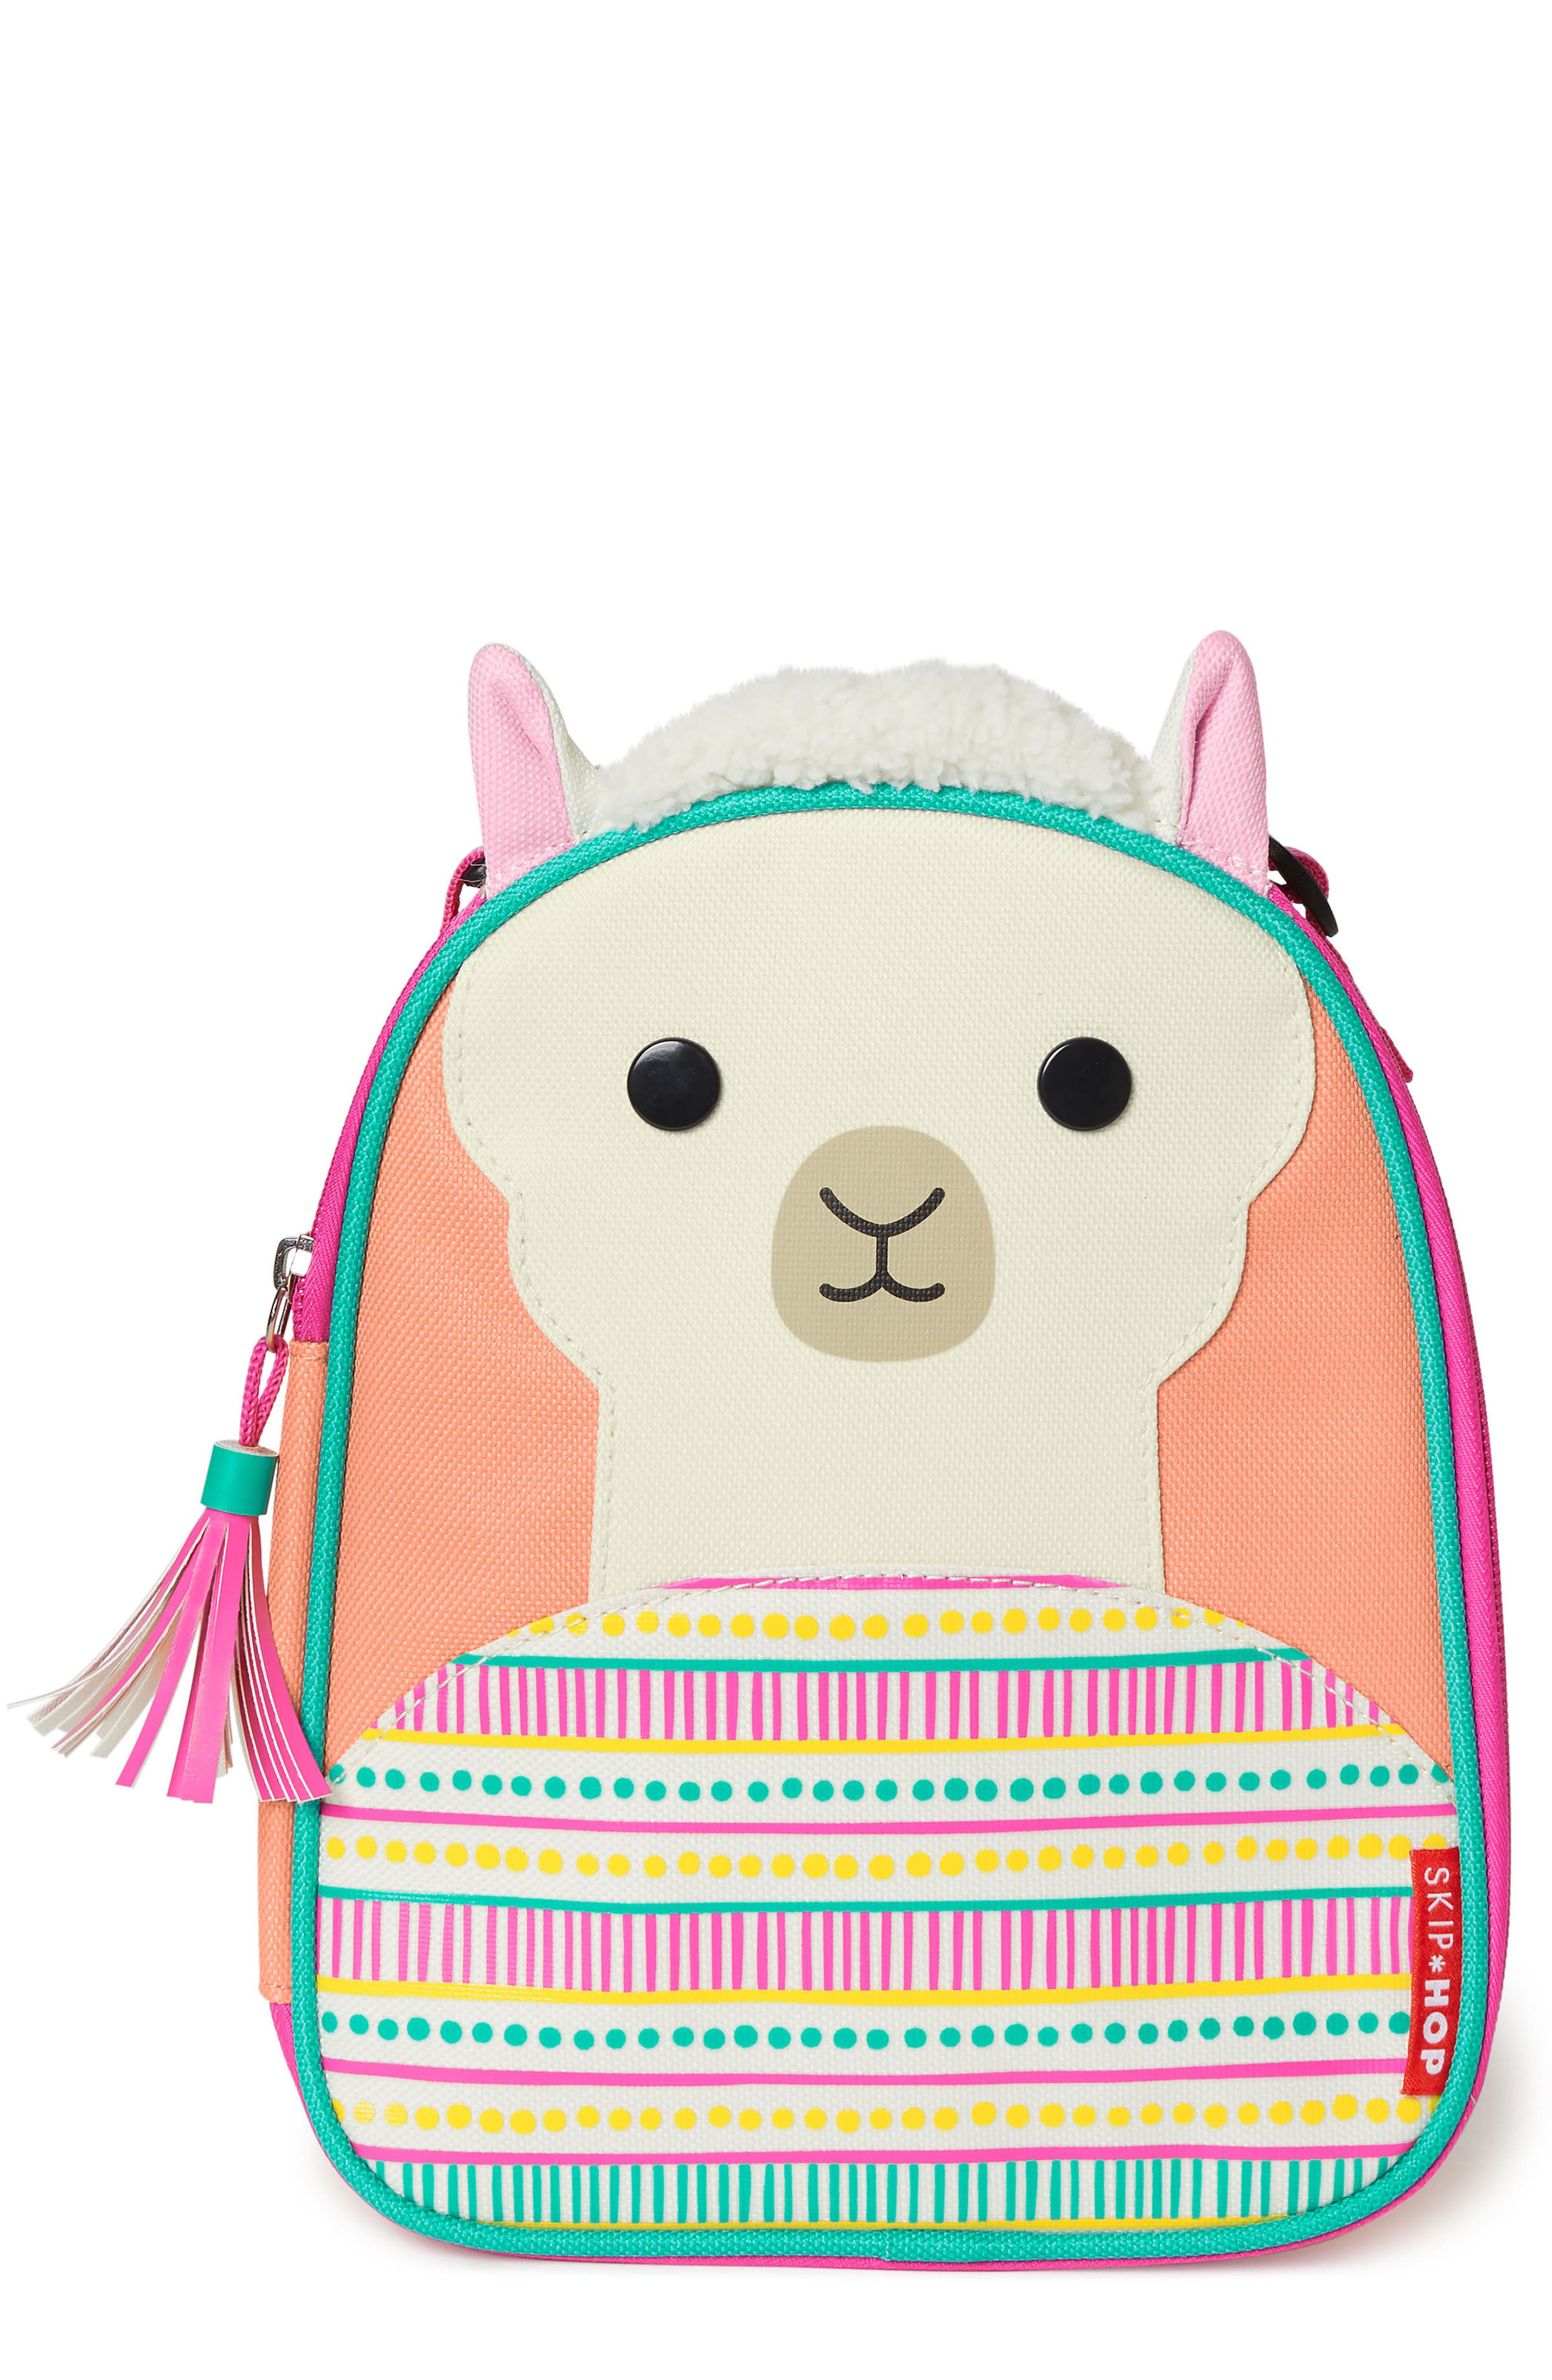 SKIP HOP Insulated Llama Lunch Bag, Main, color, PINK MULTI